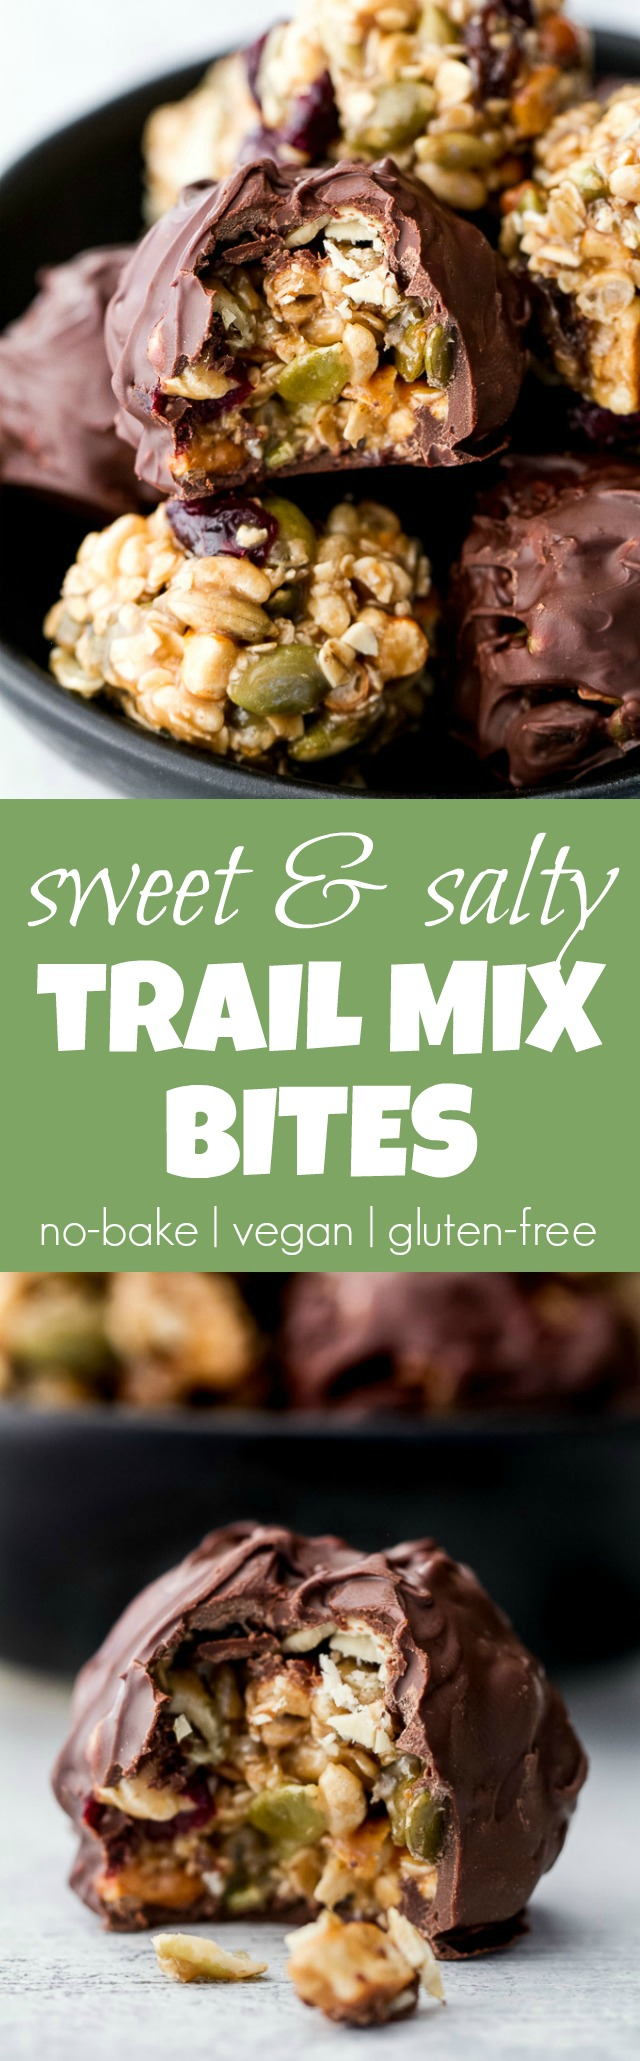 Sweet, salty, chewy, and crisp, these no-bake trail mix bites are sure to satisfy any craving! Gluten-free, nut-free, and vegan, they're a healthy snack that anyone can enjoy! | runningwithspoons.com